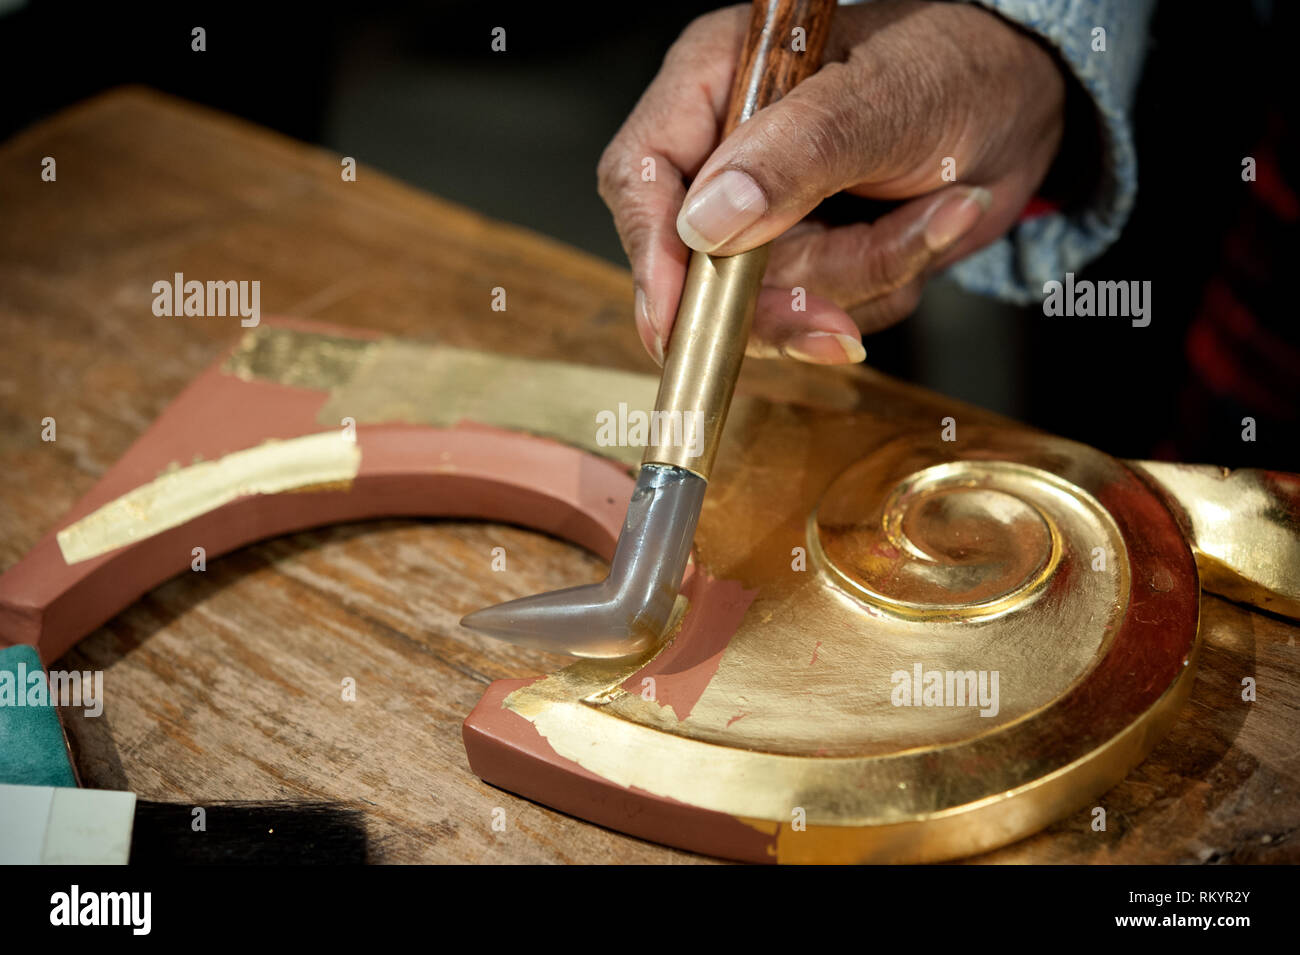 Craftsman uses agate stone for the burnish process. Gilding tecnique. - Stock Image